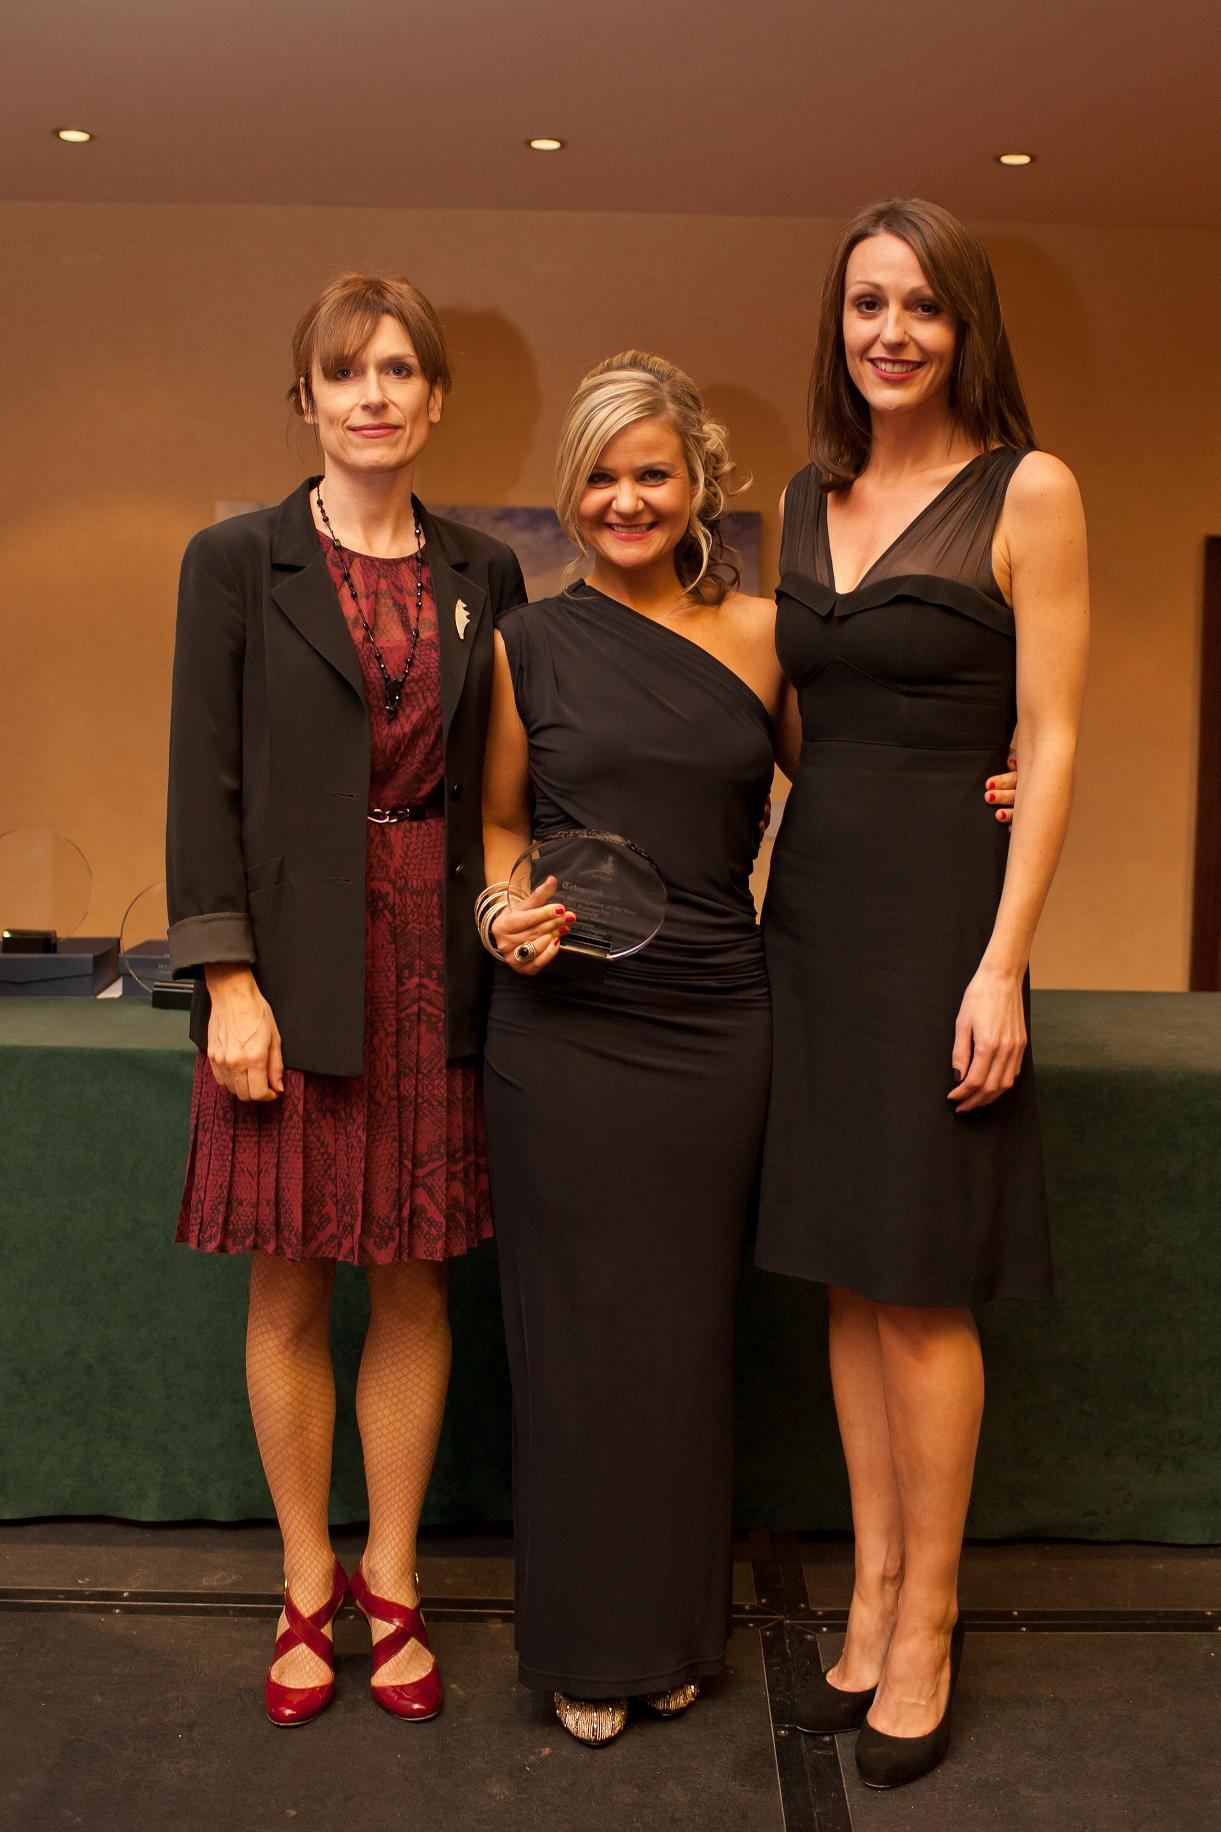 Detective Constable Claire Errington, centre, receives her award from actors Amelia Bullmore, left, and Suranne Jones, who pl